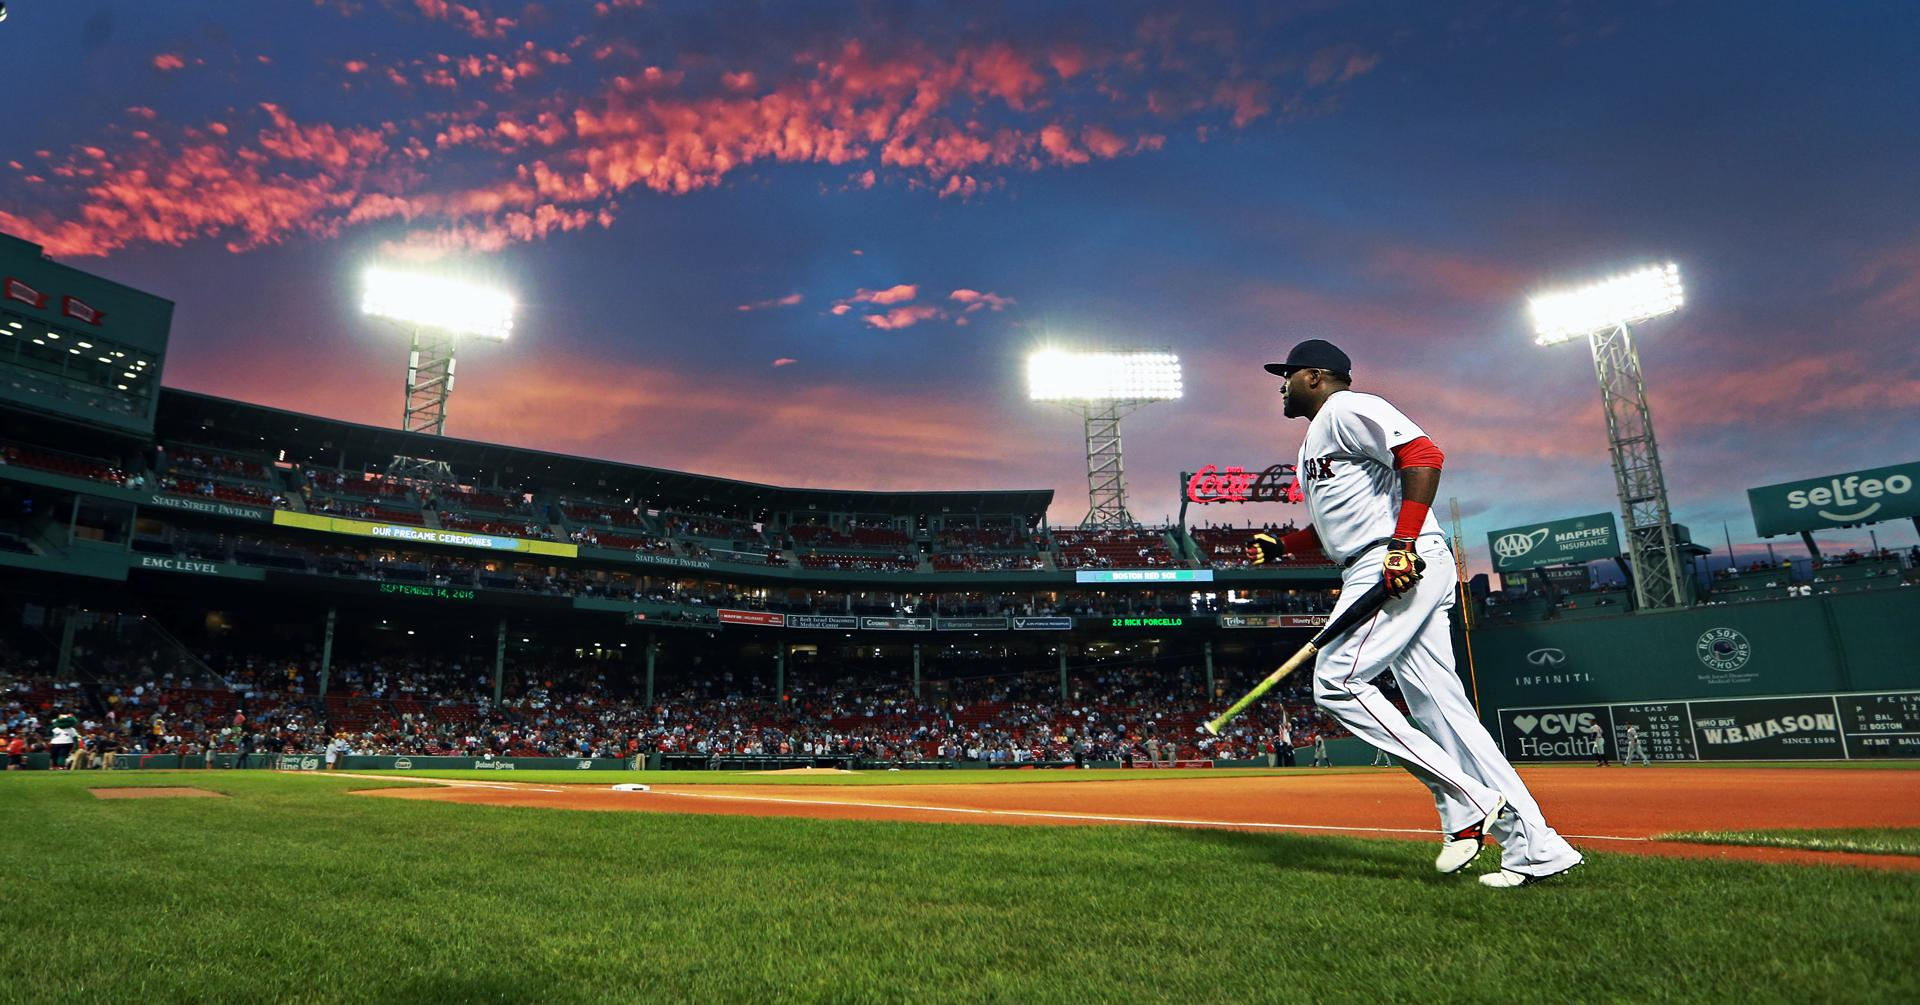 09/14/16: Boston, MA: Red Sox DH David Ortiz will soon be riding off into the sunset as far as his major league baseball career is concerned, tonight he is just heading back into the dugout as the sun sets over Fenway Park after finishing some pre game warmups. The Boston Red Sox hosted the Baltimore Orioles in a regular season MLB baseball game at Fenway Park. (Globe Staff Photo/Jim Davis) section: metro topic: Red Sox-Orioles